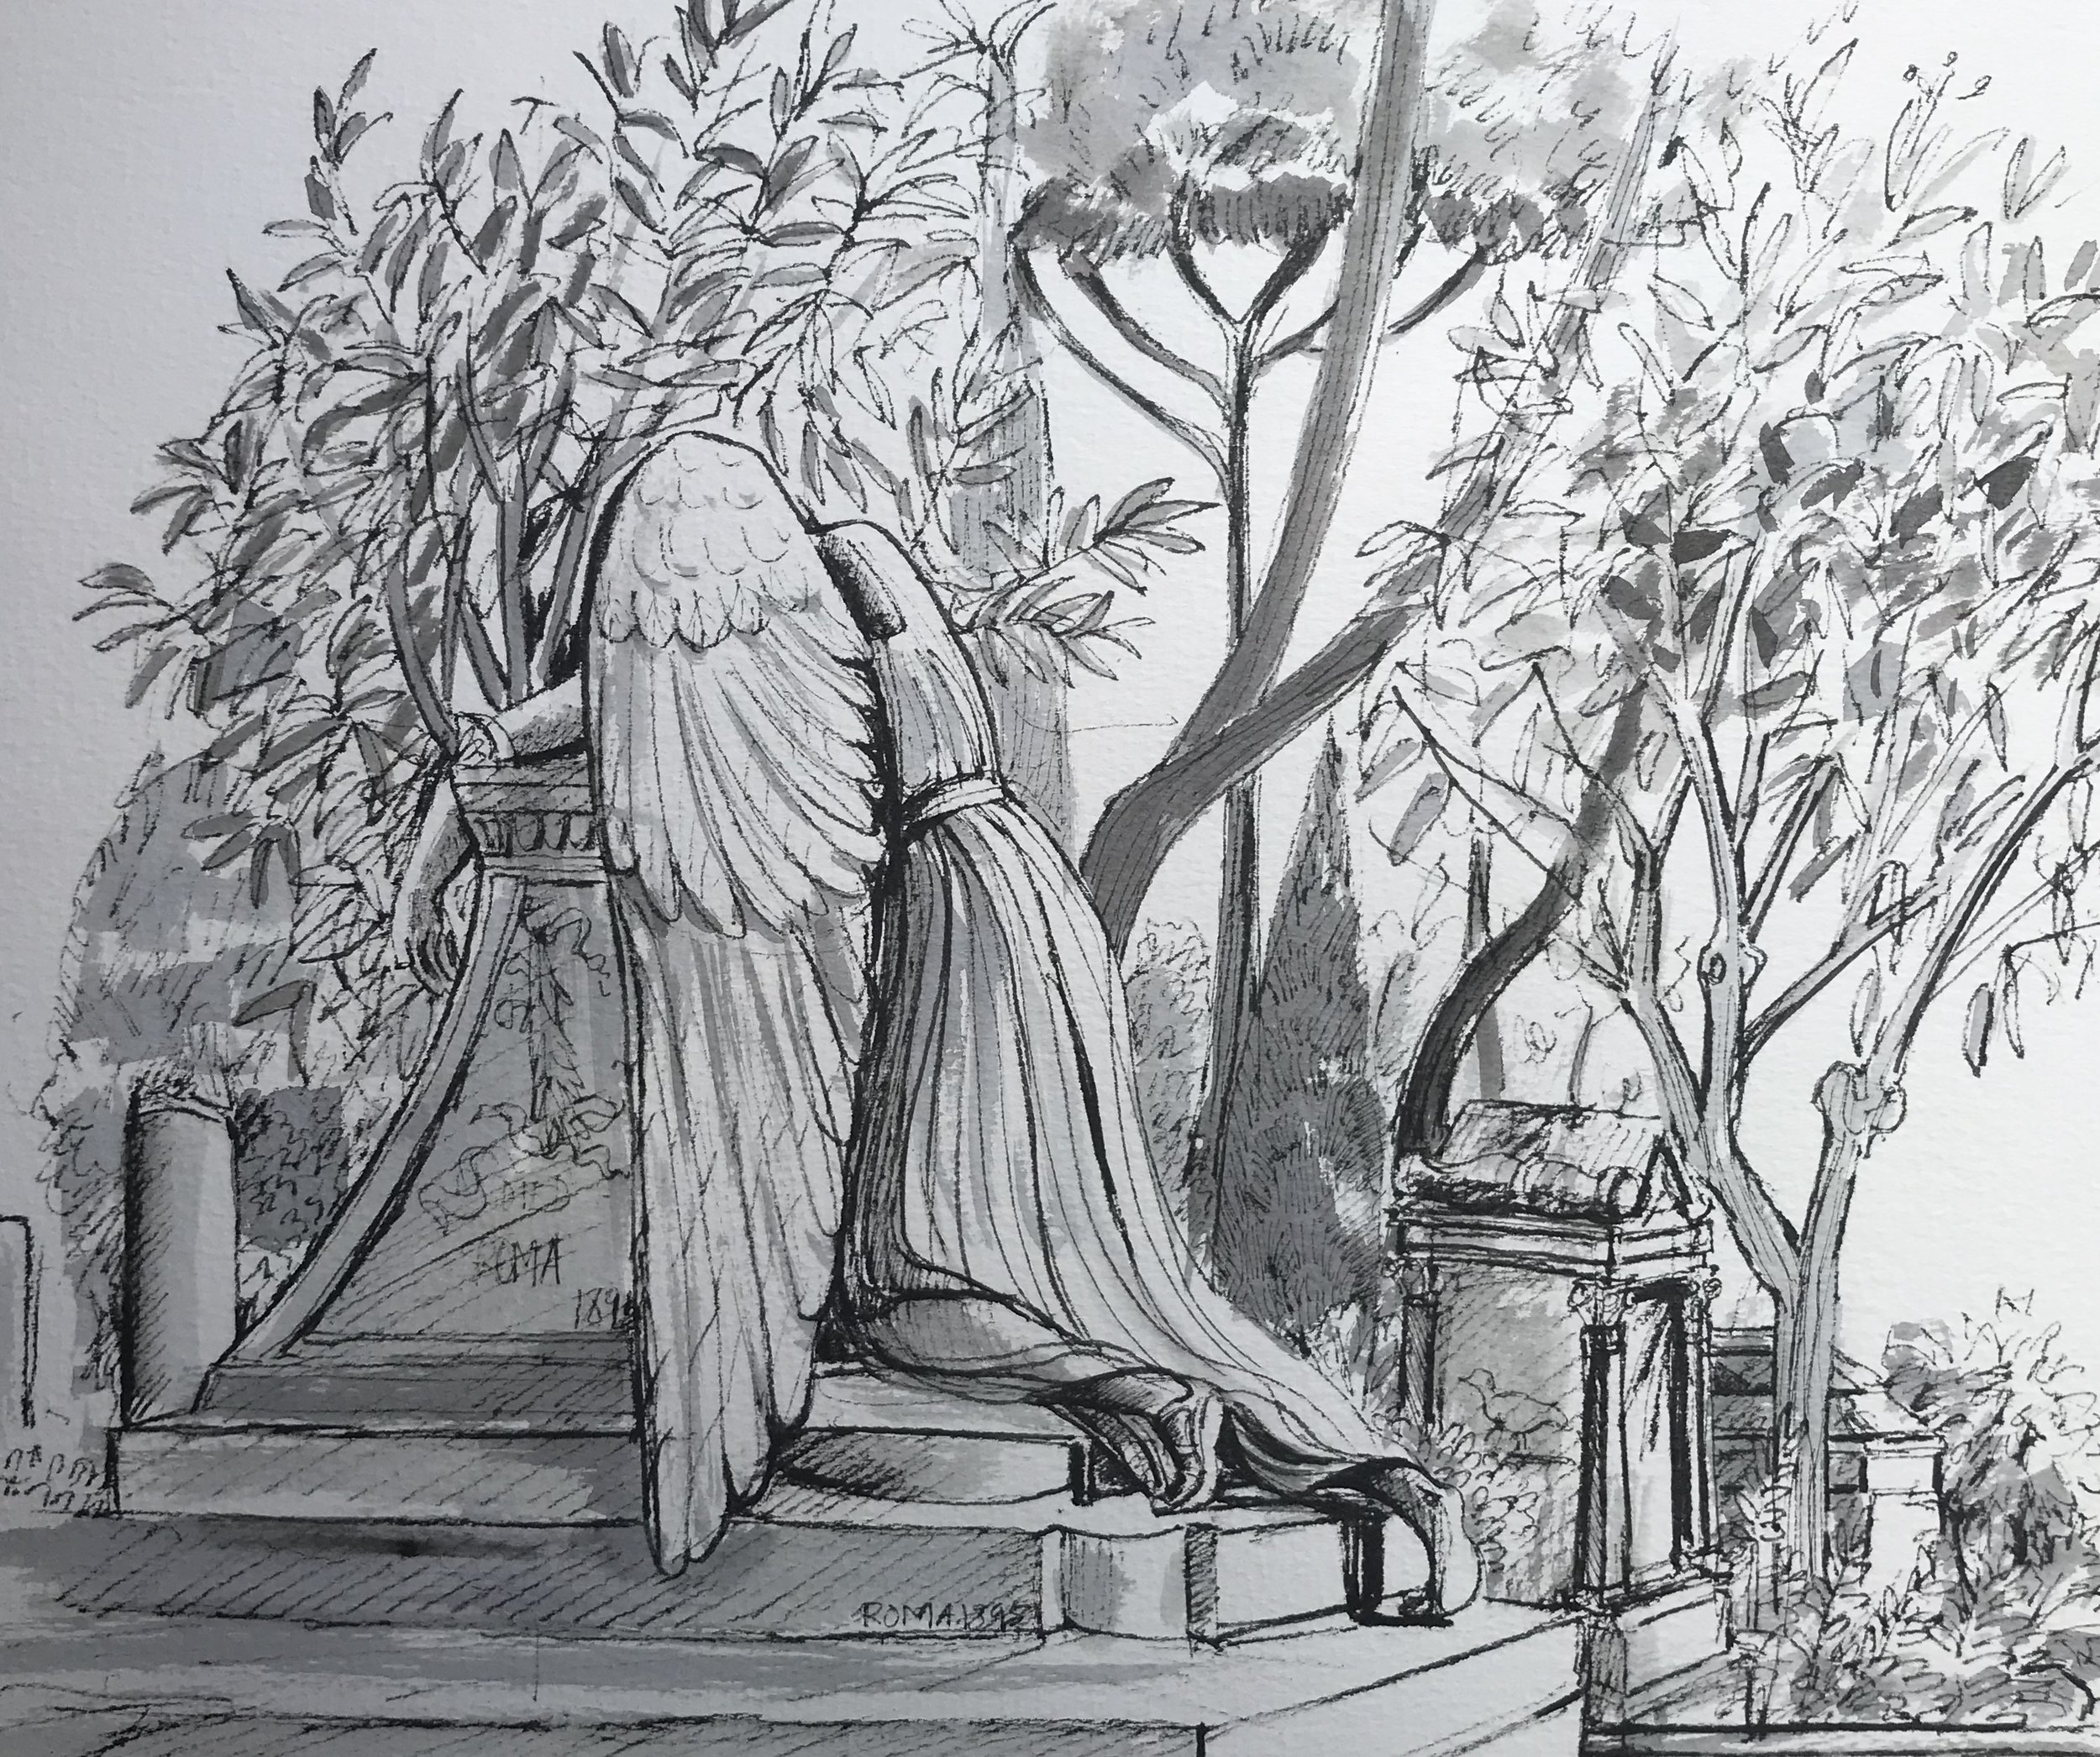 The Weeping Angel. Non Catholic Cemetery of Rome (Graphite and wash). Probably the most photographed monument in the cemetery. £60 framed